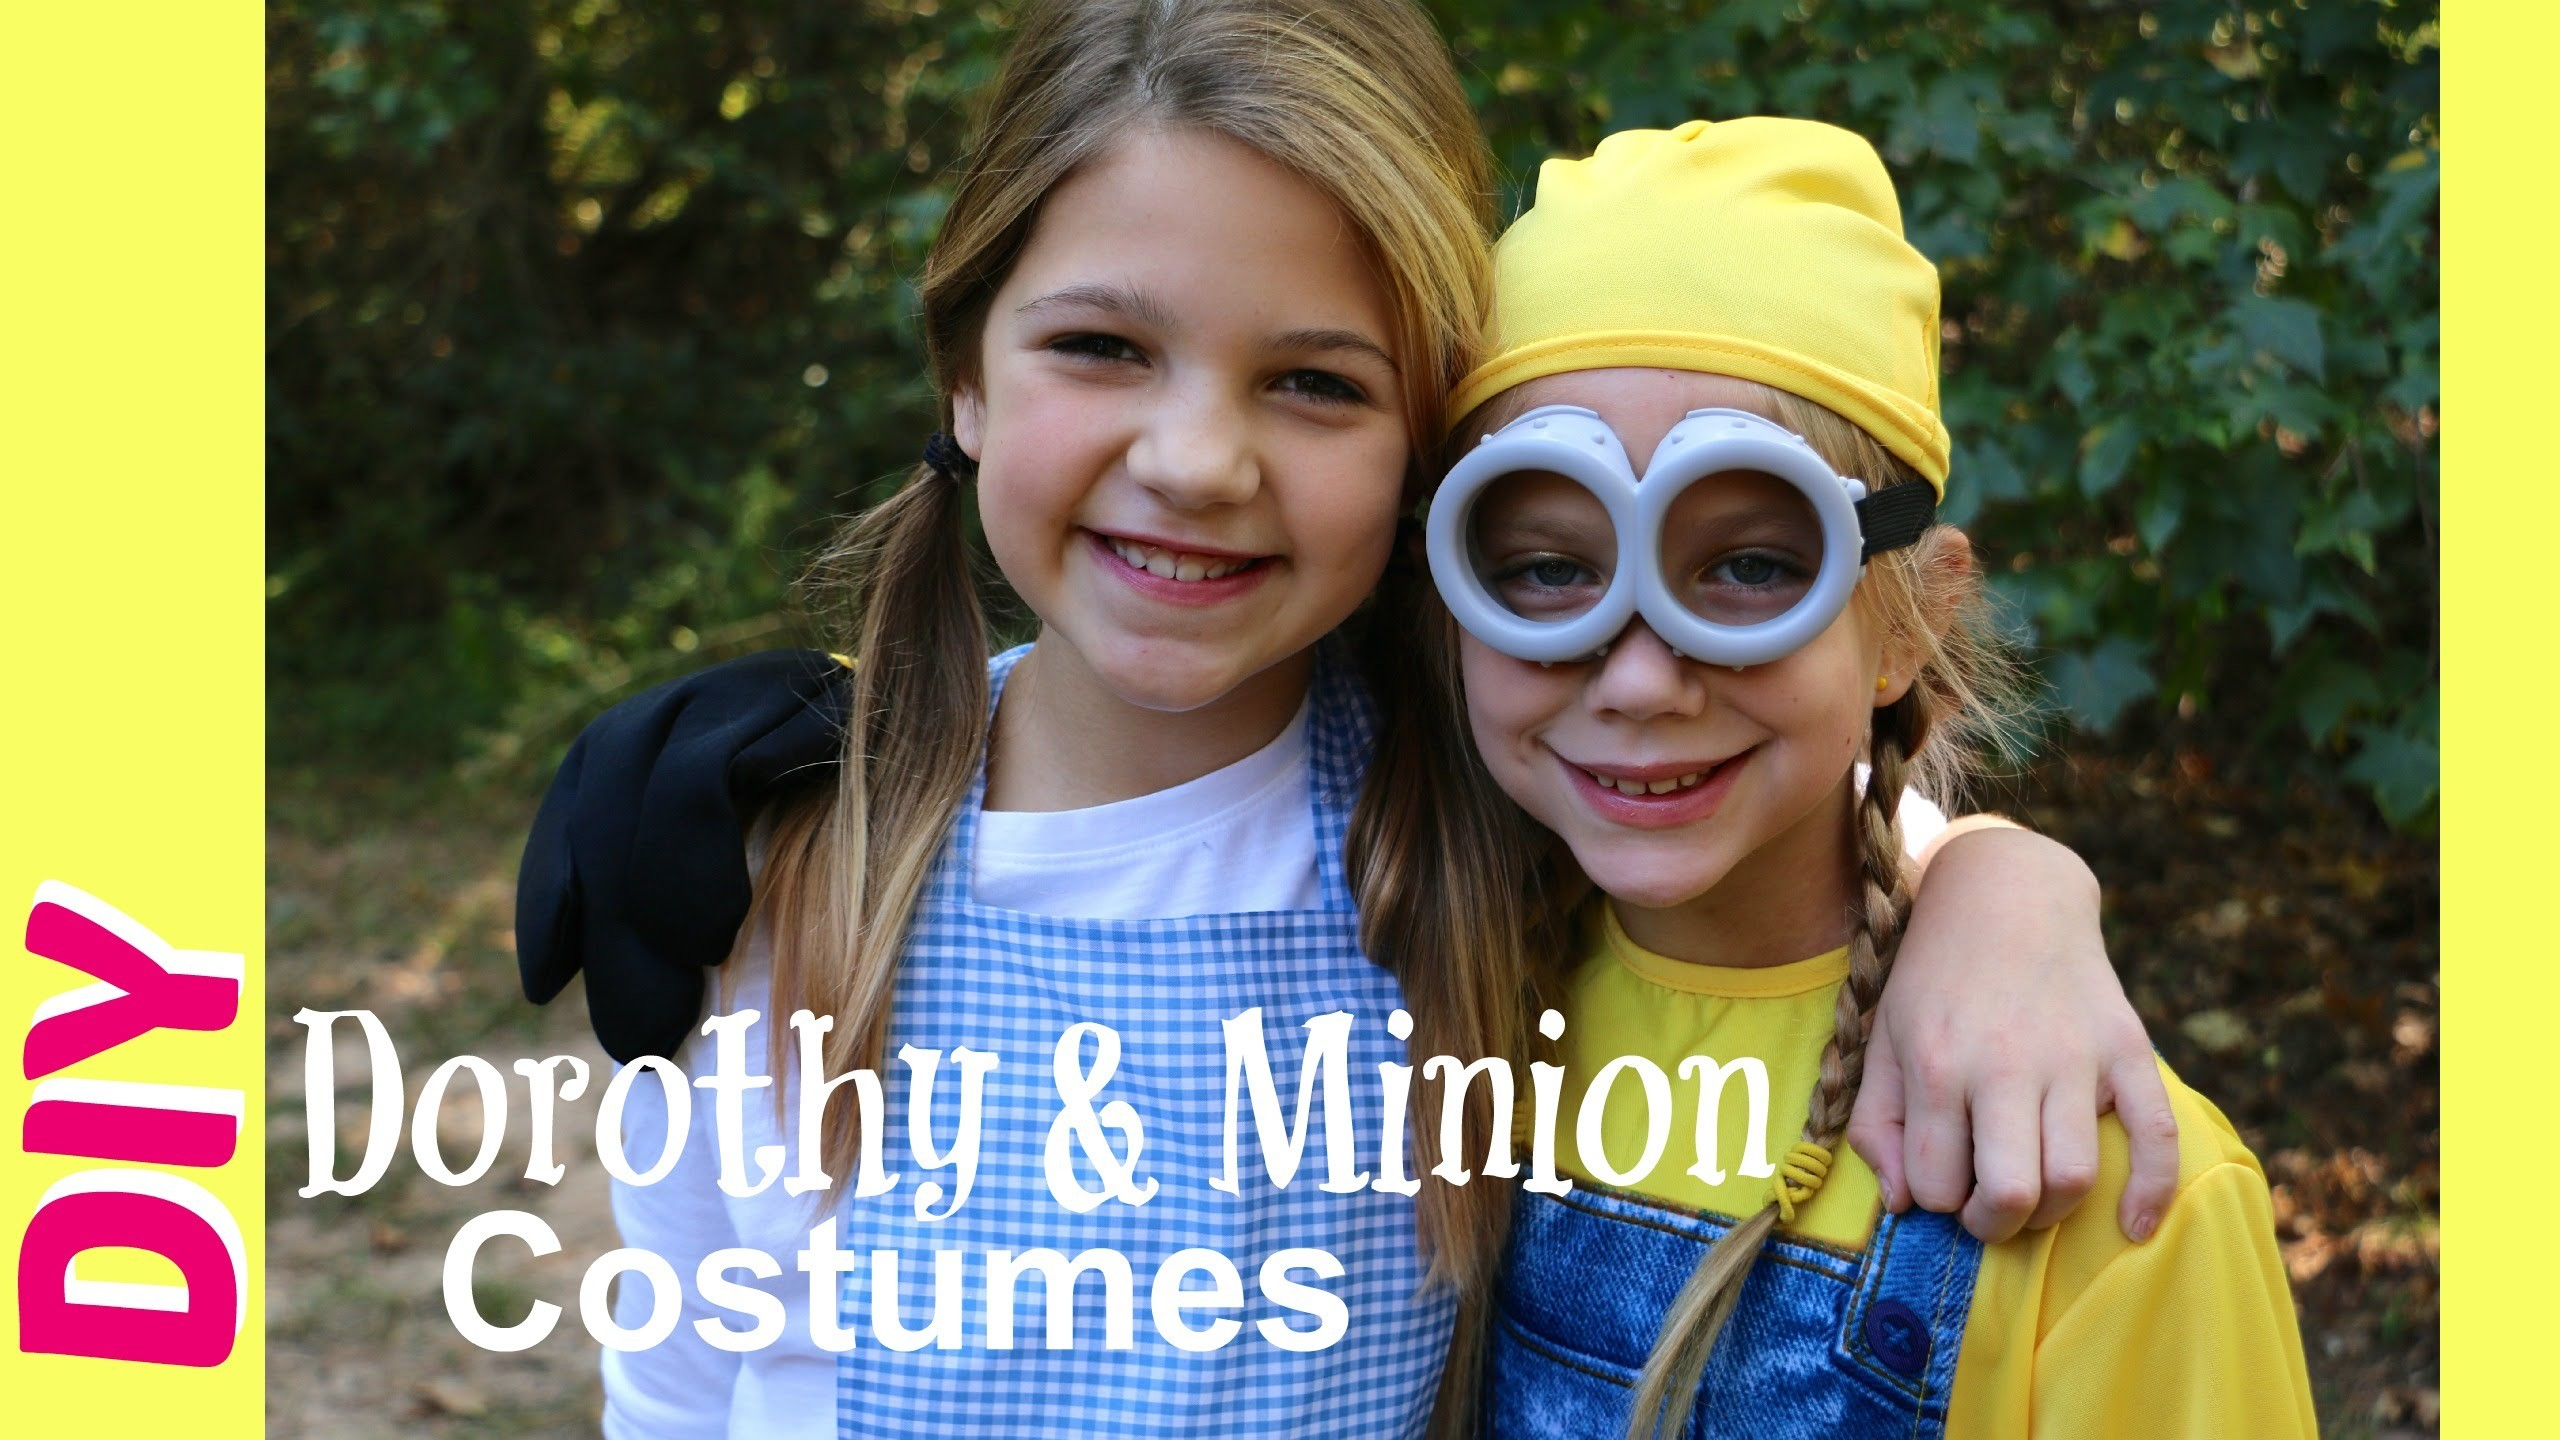 How to Make Dorothy Halloween Costume DIY   Minions Costumes & Trick-or-Treating   Jazzy Girl Stuff